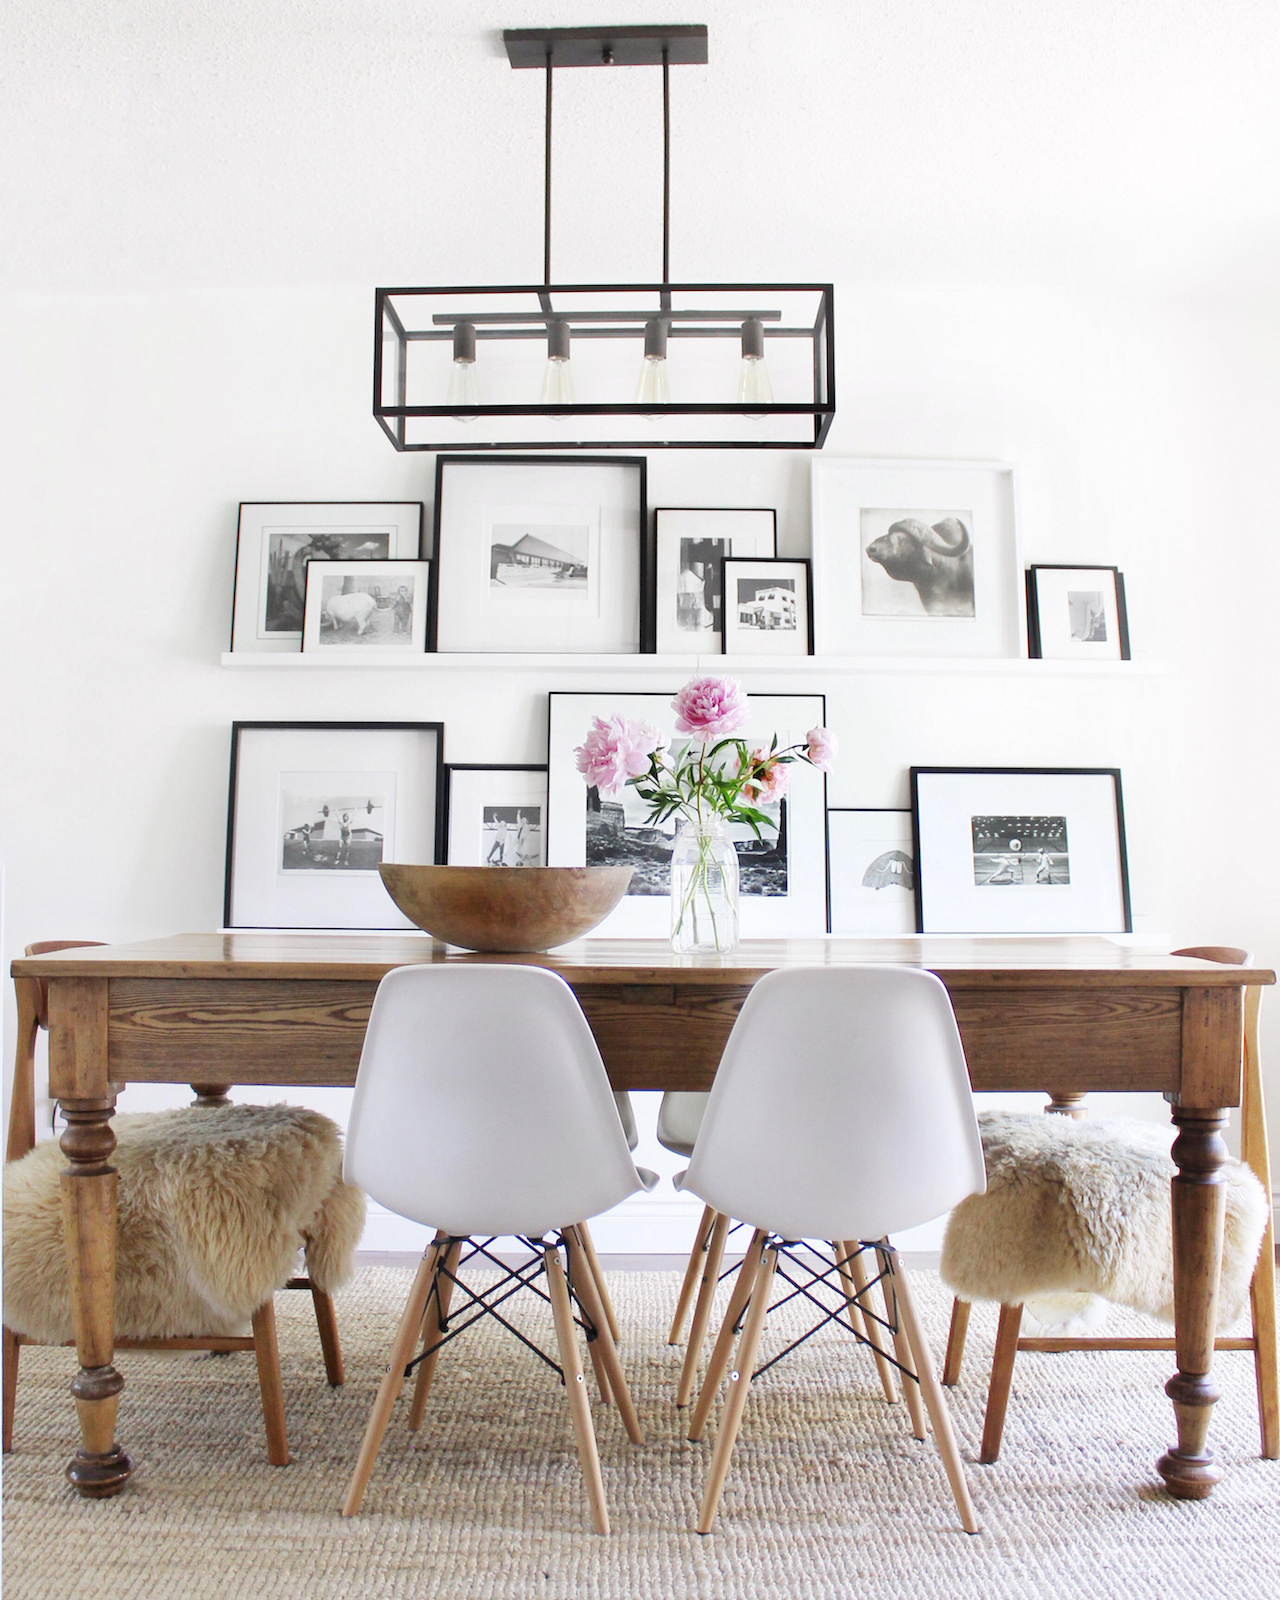 gallery wall-dining room ledge displays various kinds of framed artwork